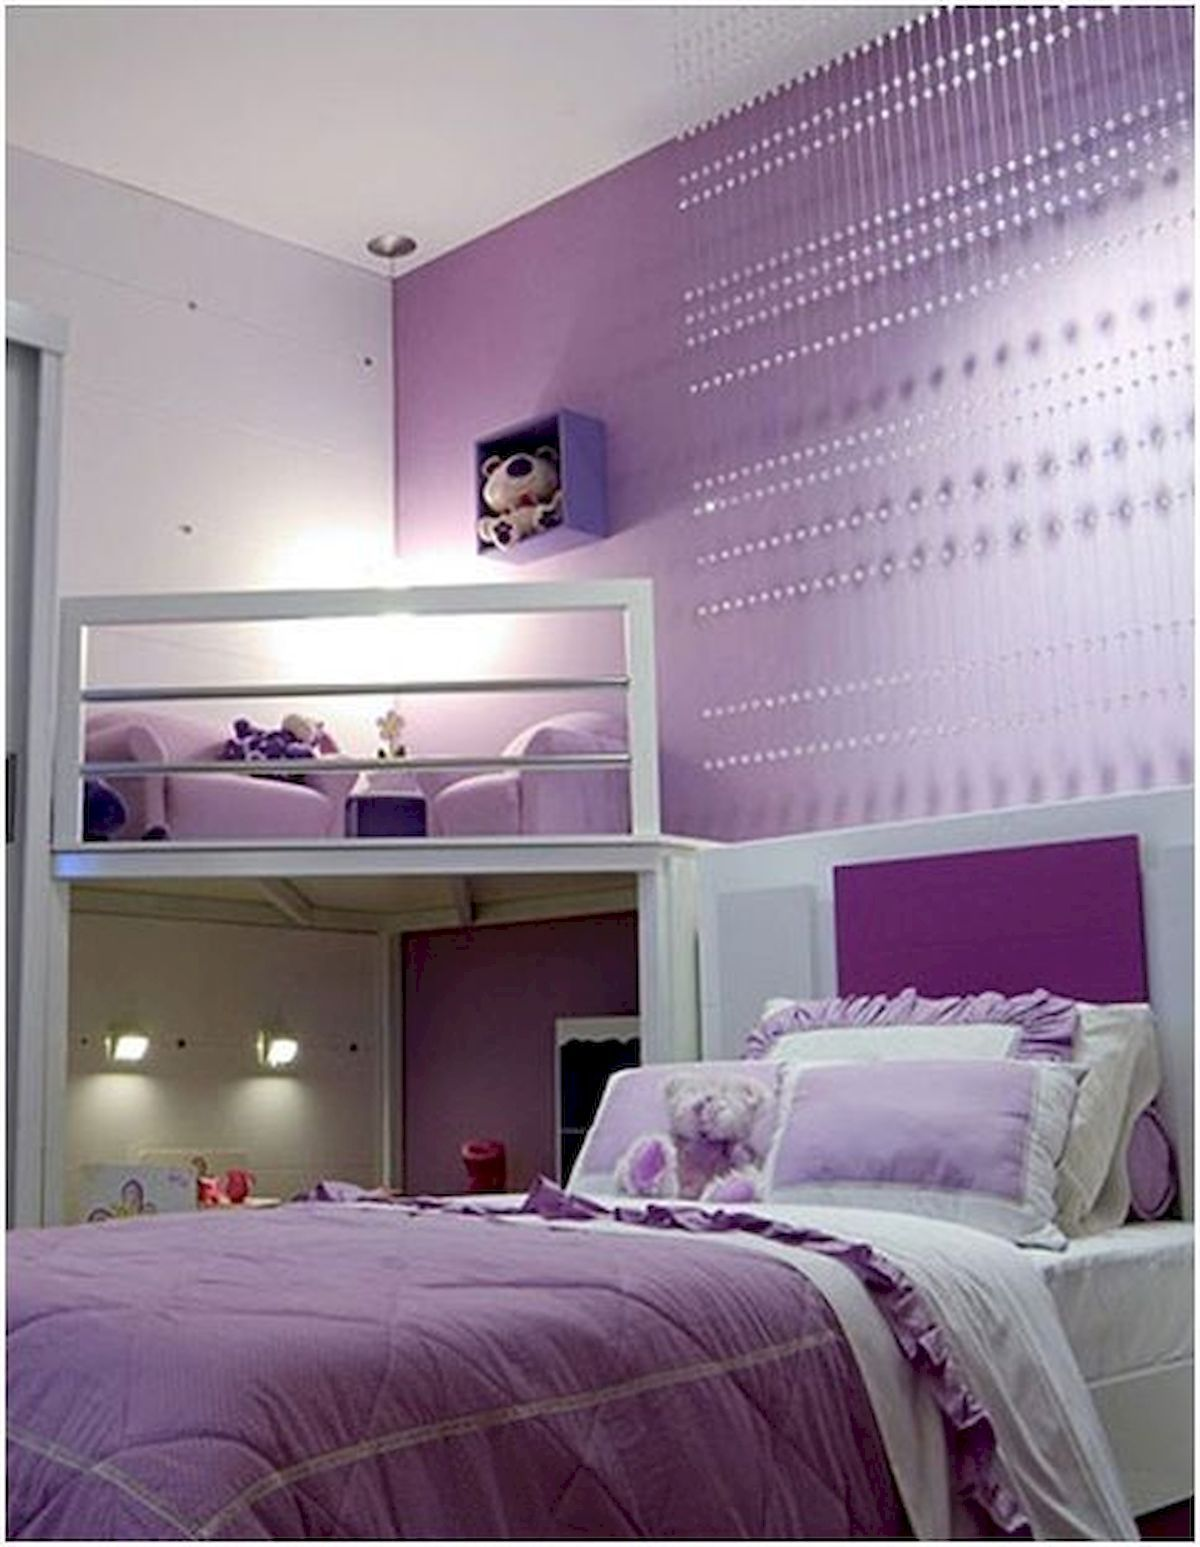 130+ Awesome Bedroom Ideas For Your Inspiration & 130+ Awesome Bedroom Ideas For Your Inspiration   BED \u0026 BATH ...